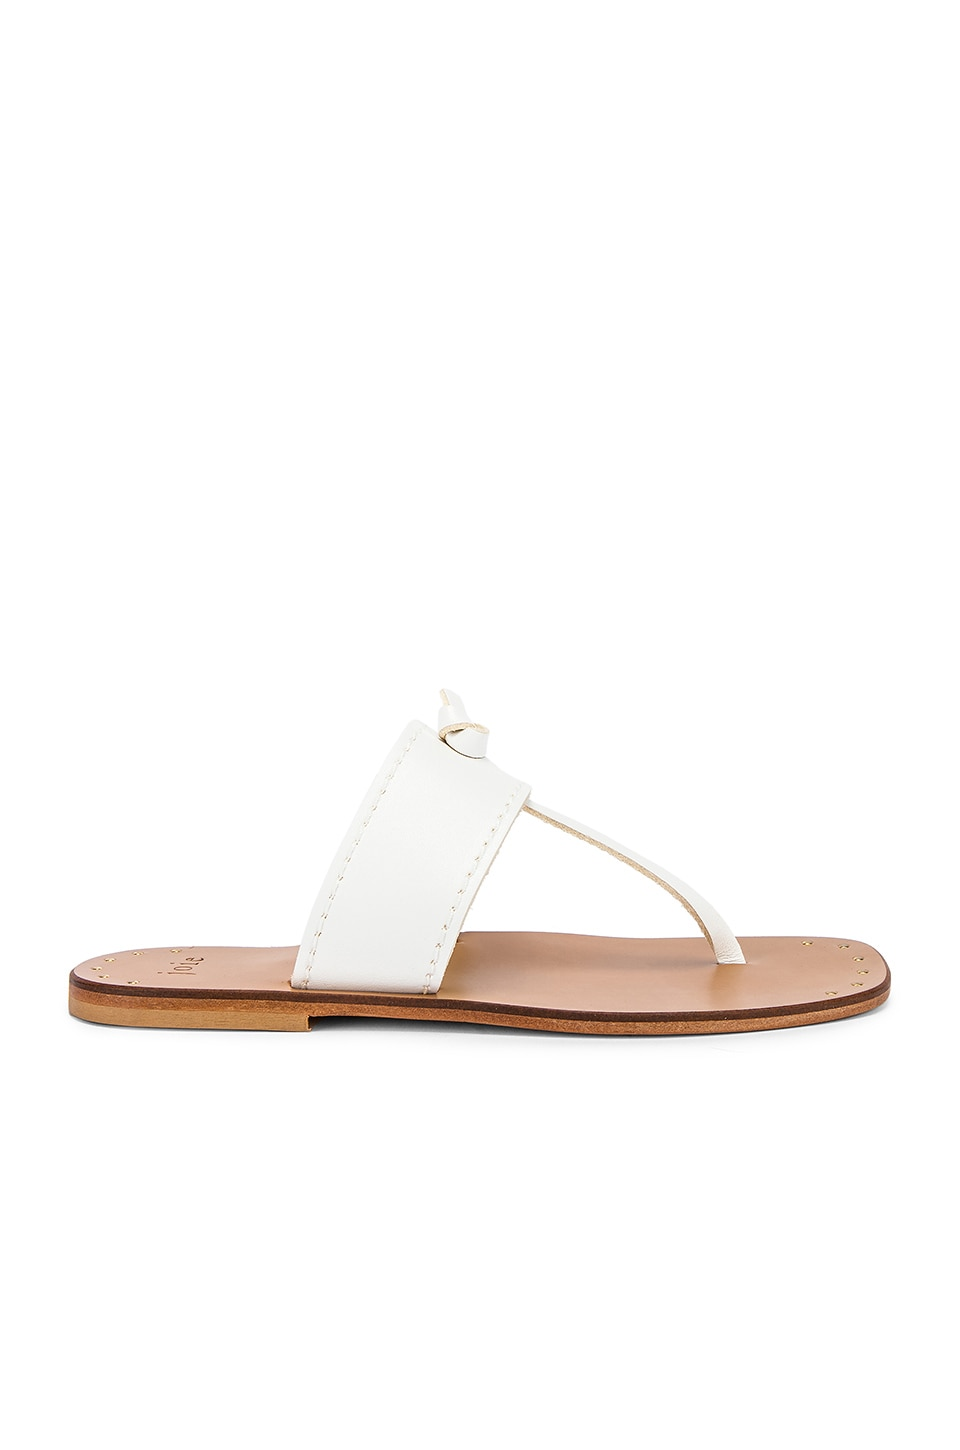 Joie Baylin Sandal in White